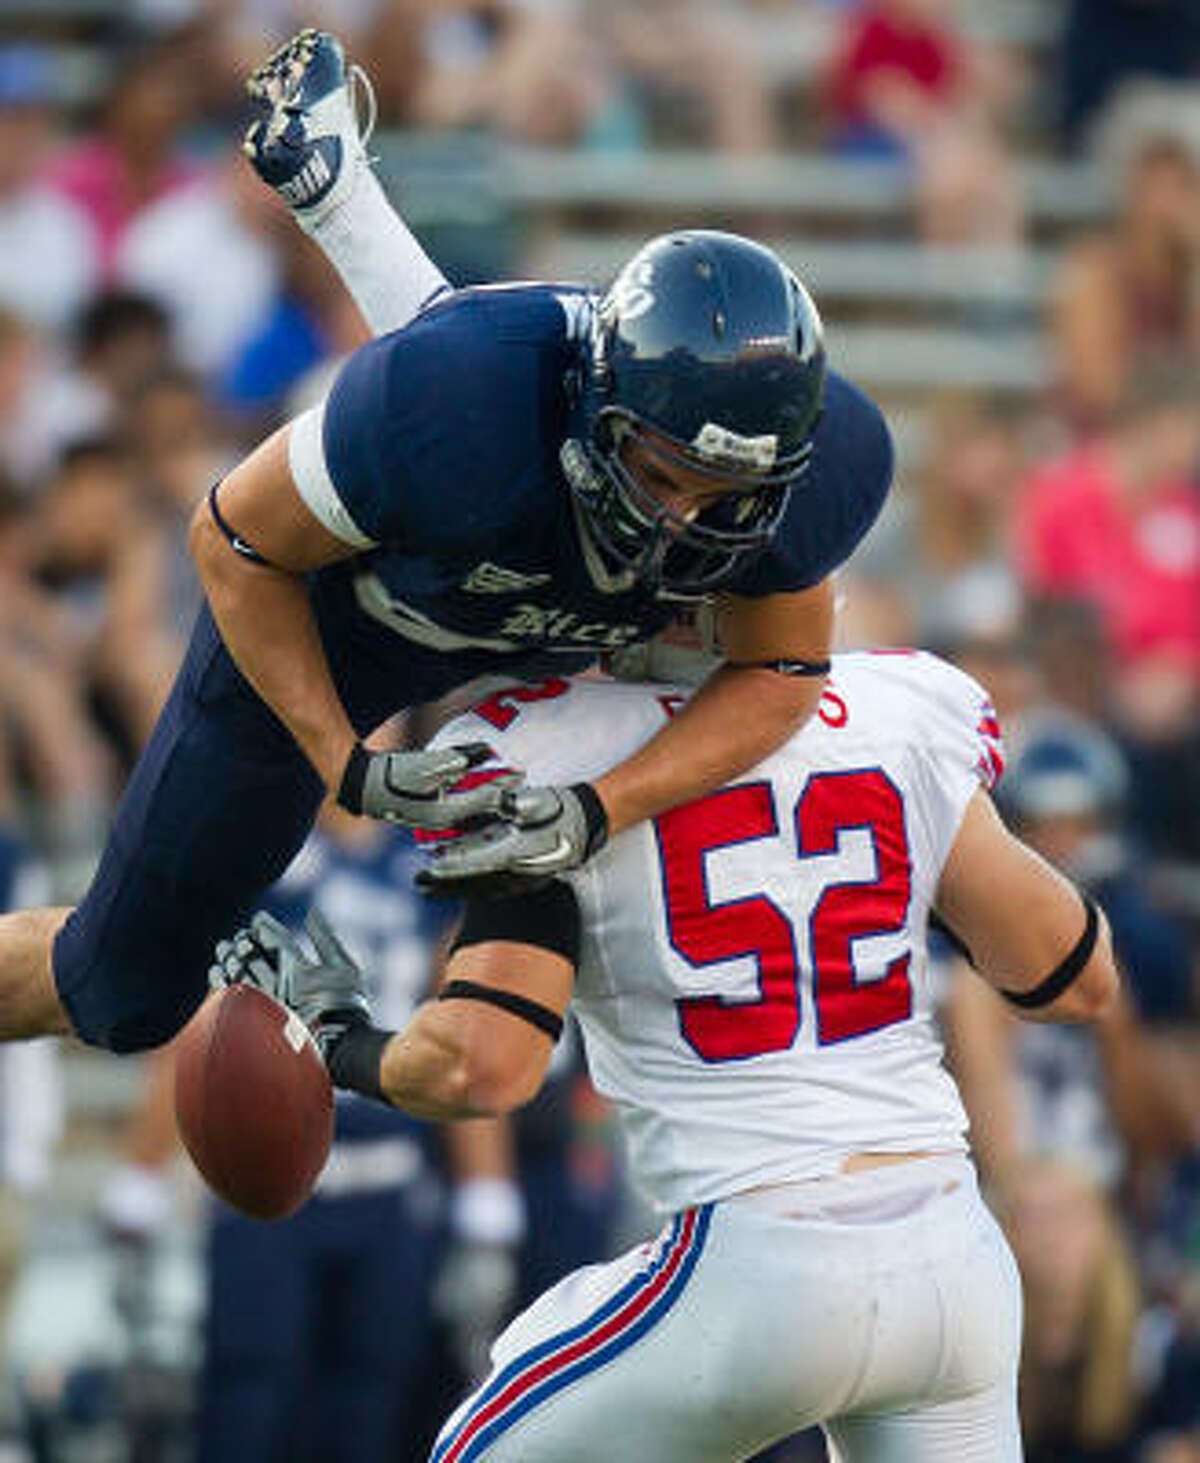 Rice tight end Luke Willson can't hold onto a pass while being hit by SMU linebacker Pete Fleps during the first half.